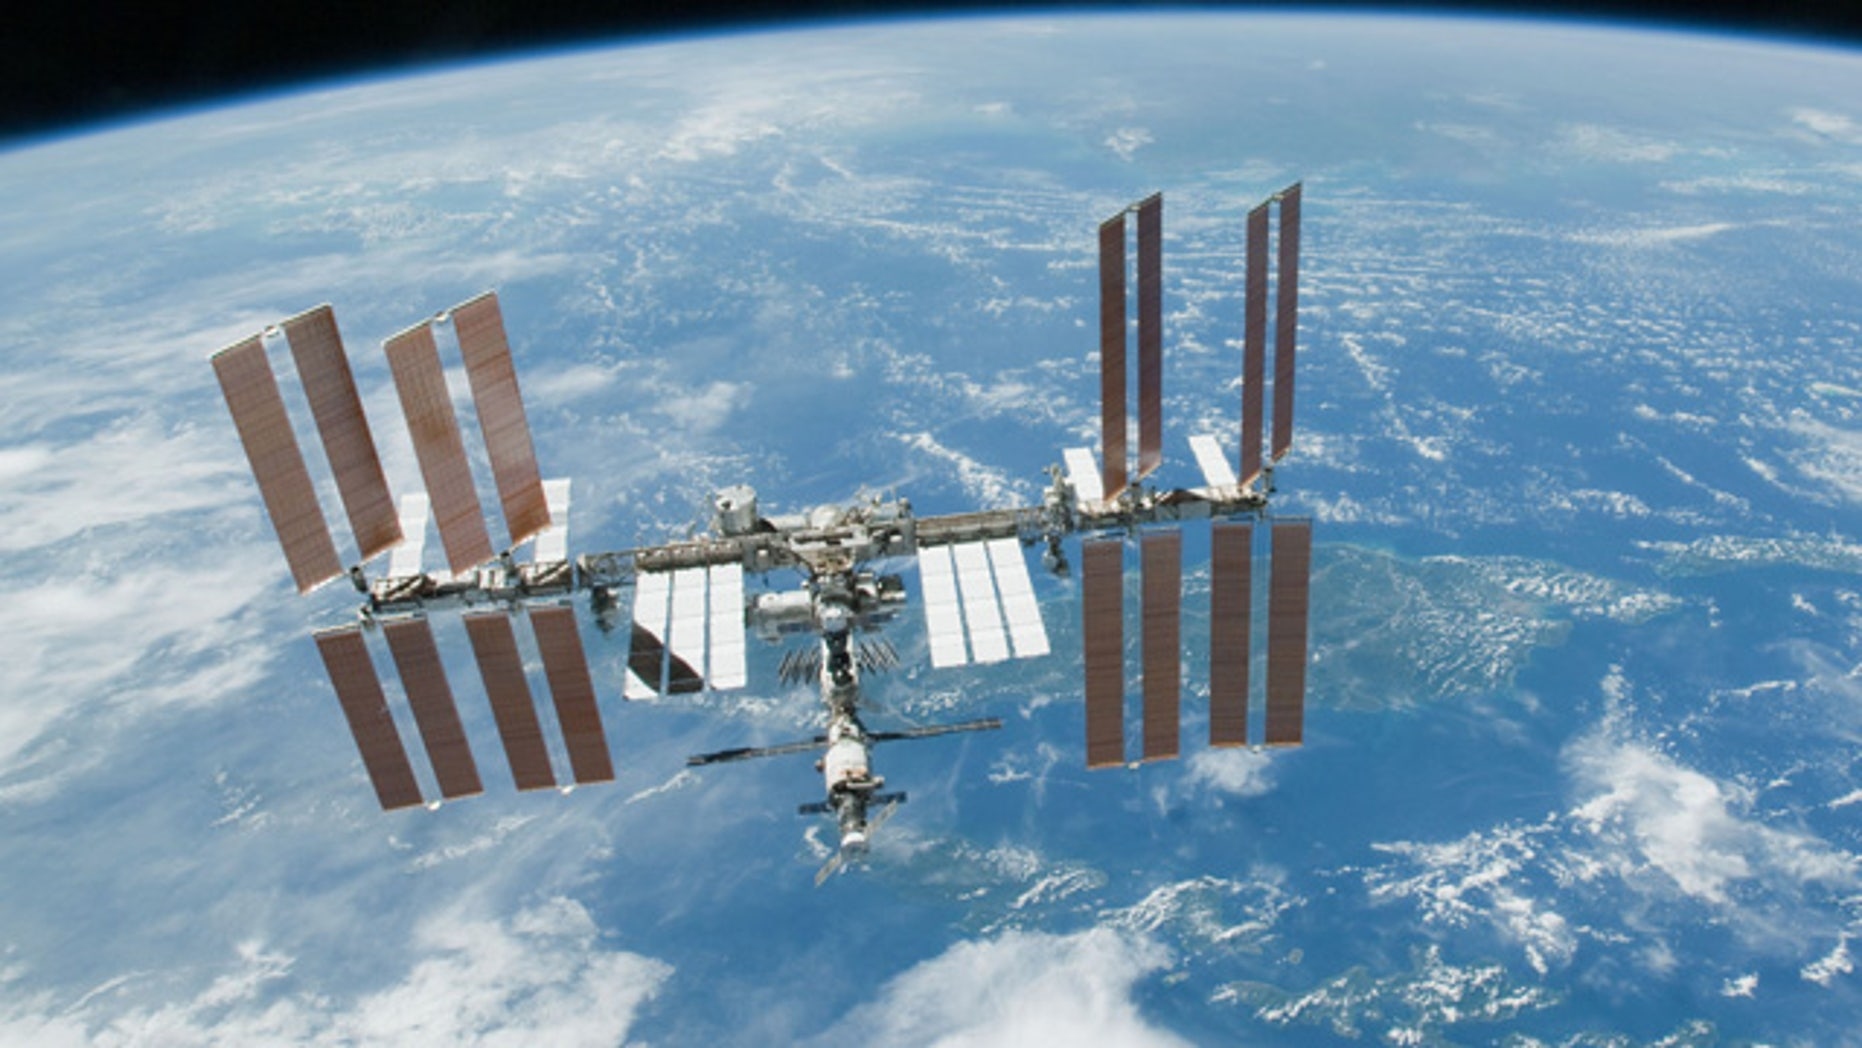 Feb. 19. 2010: This file photo provided by NASA shows the International Space Station with Earth's horizon as a backdrop.